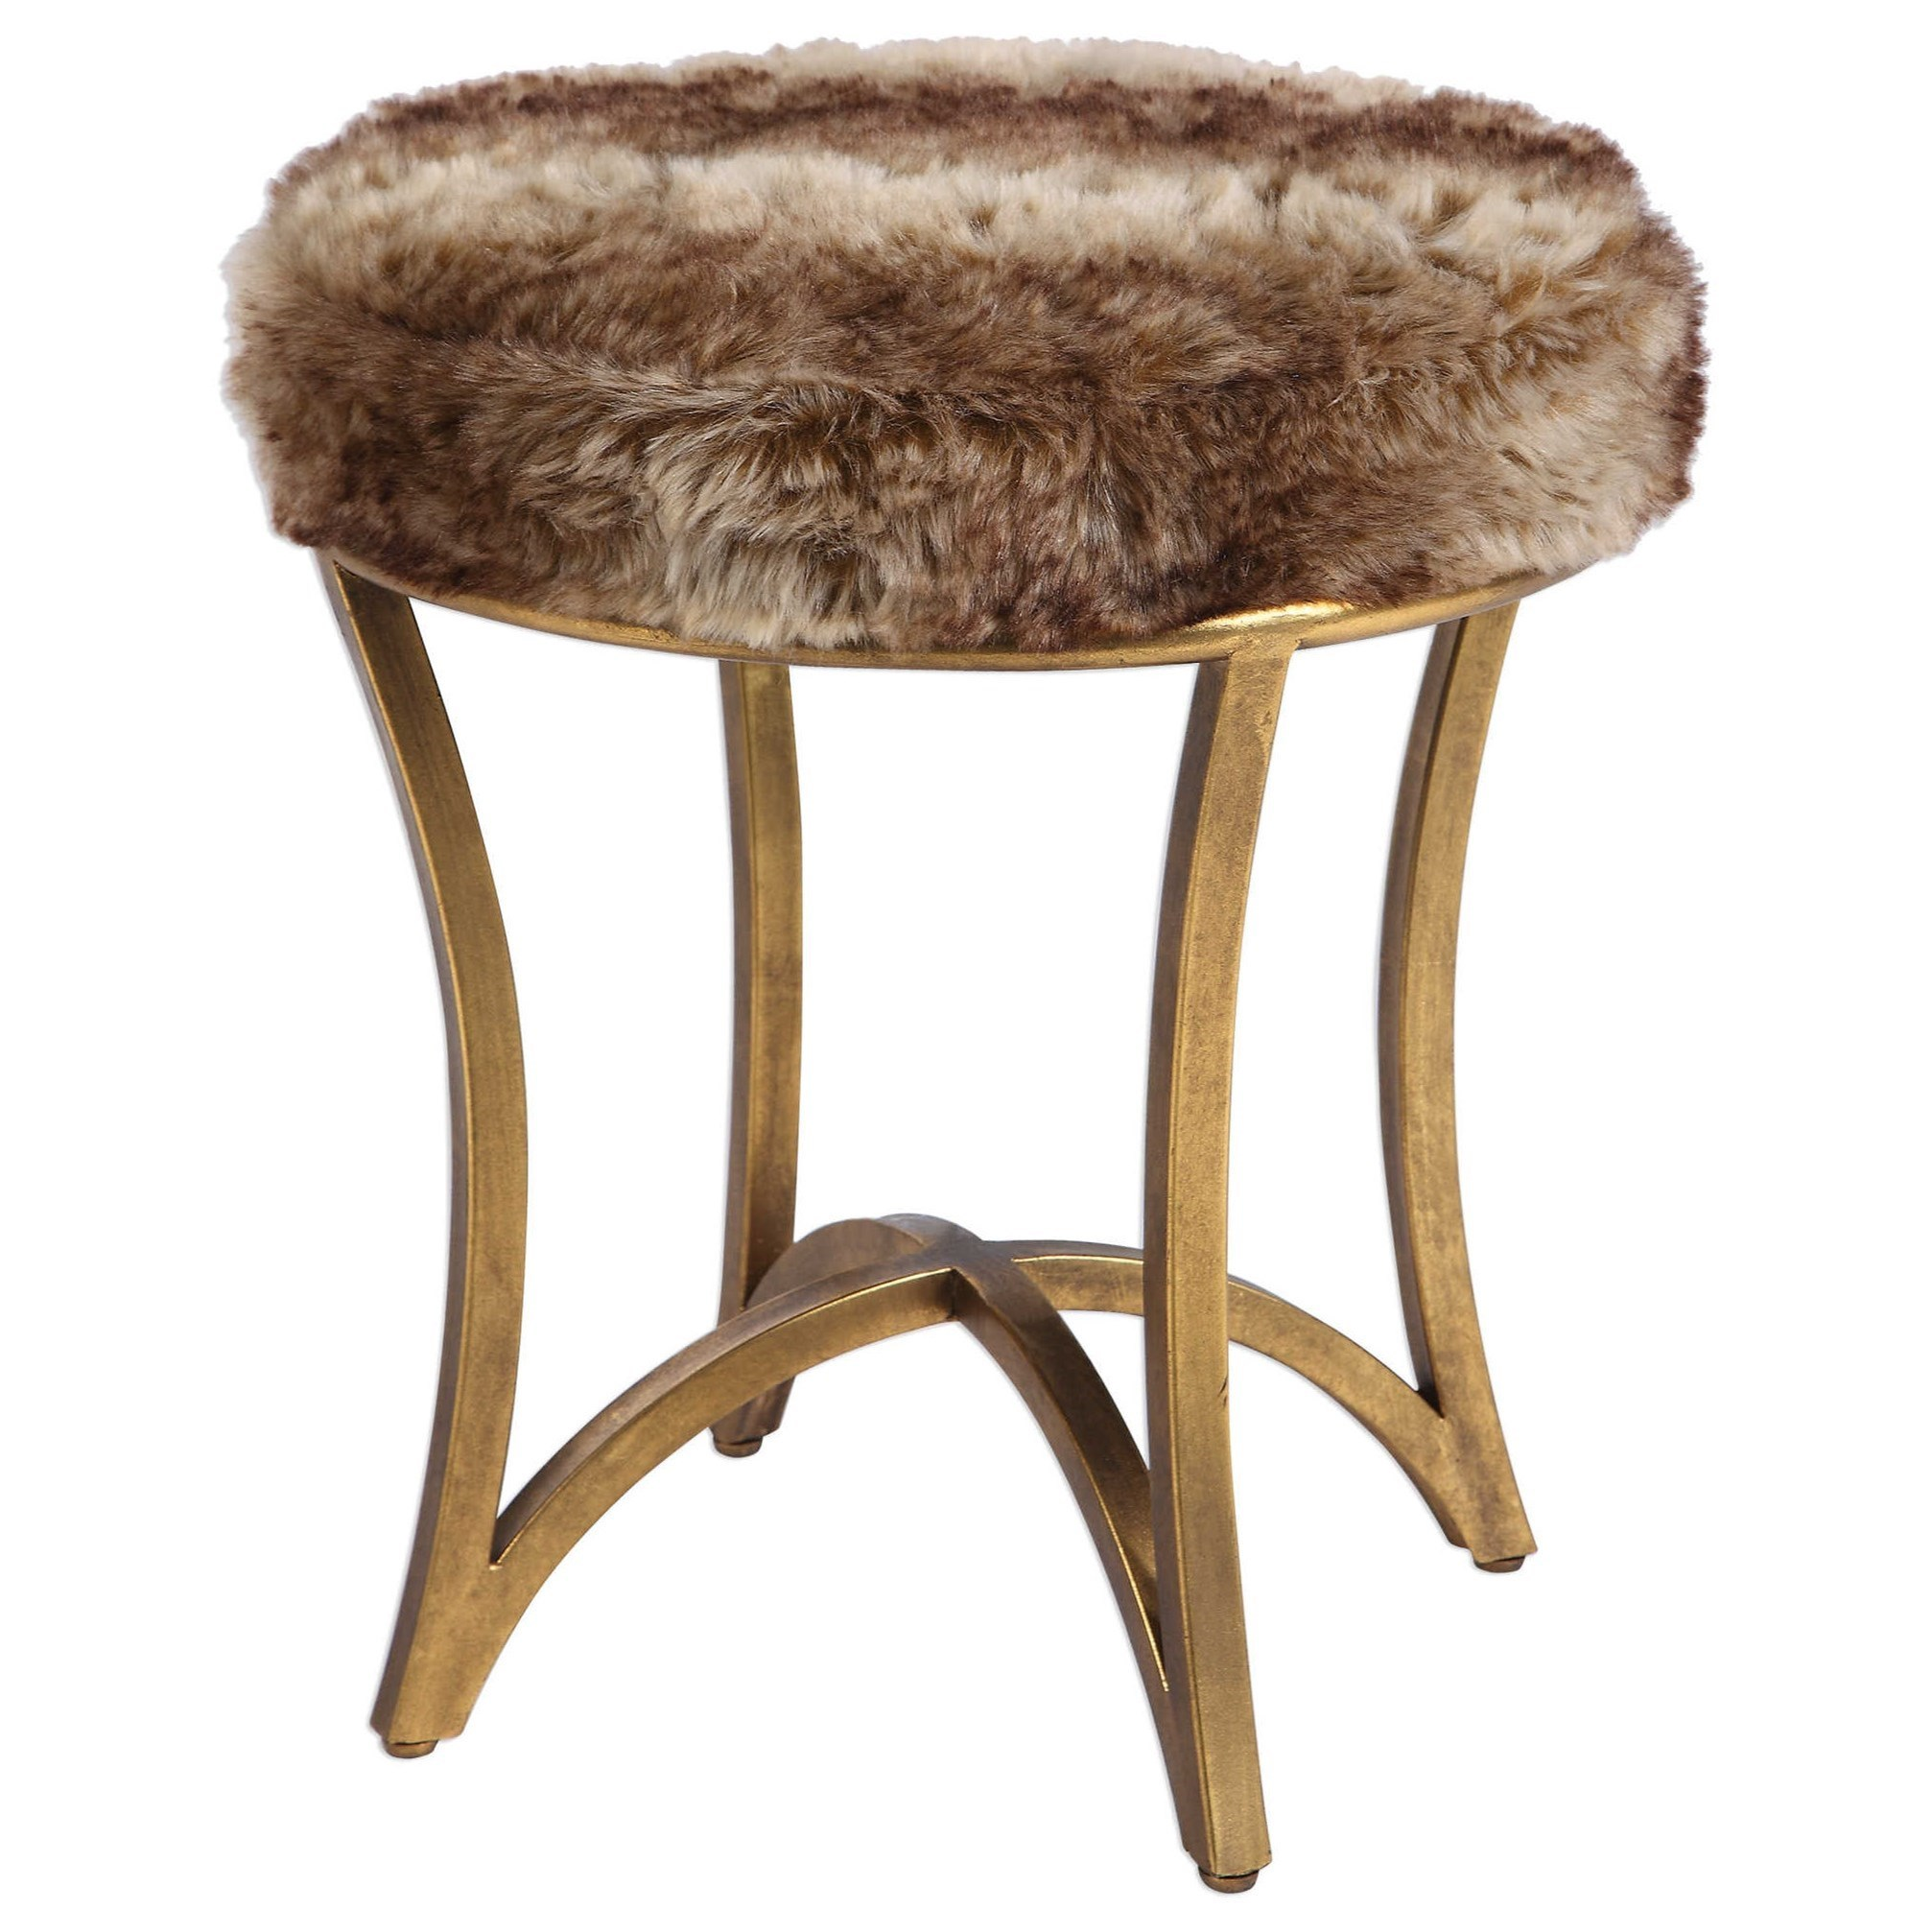 Accent Furniture - Stools Bernett Fur Accent Stool by Uttermost at Upper Room Home Furnishings